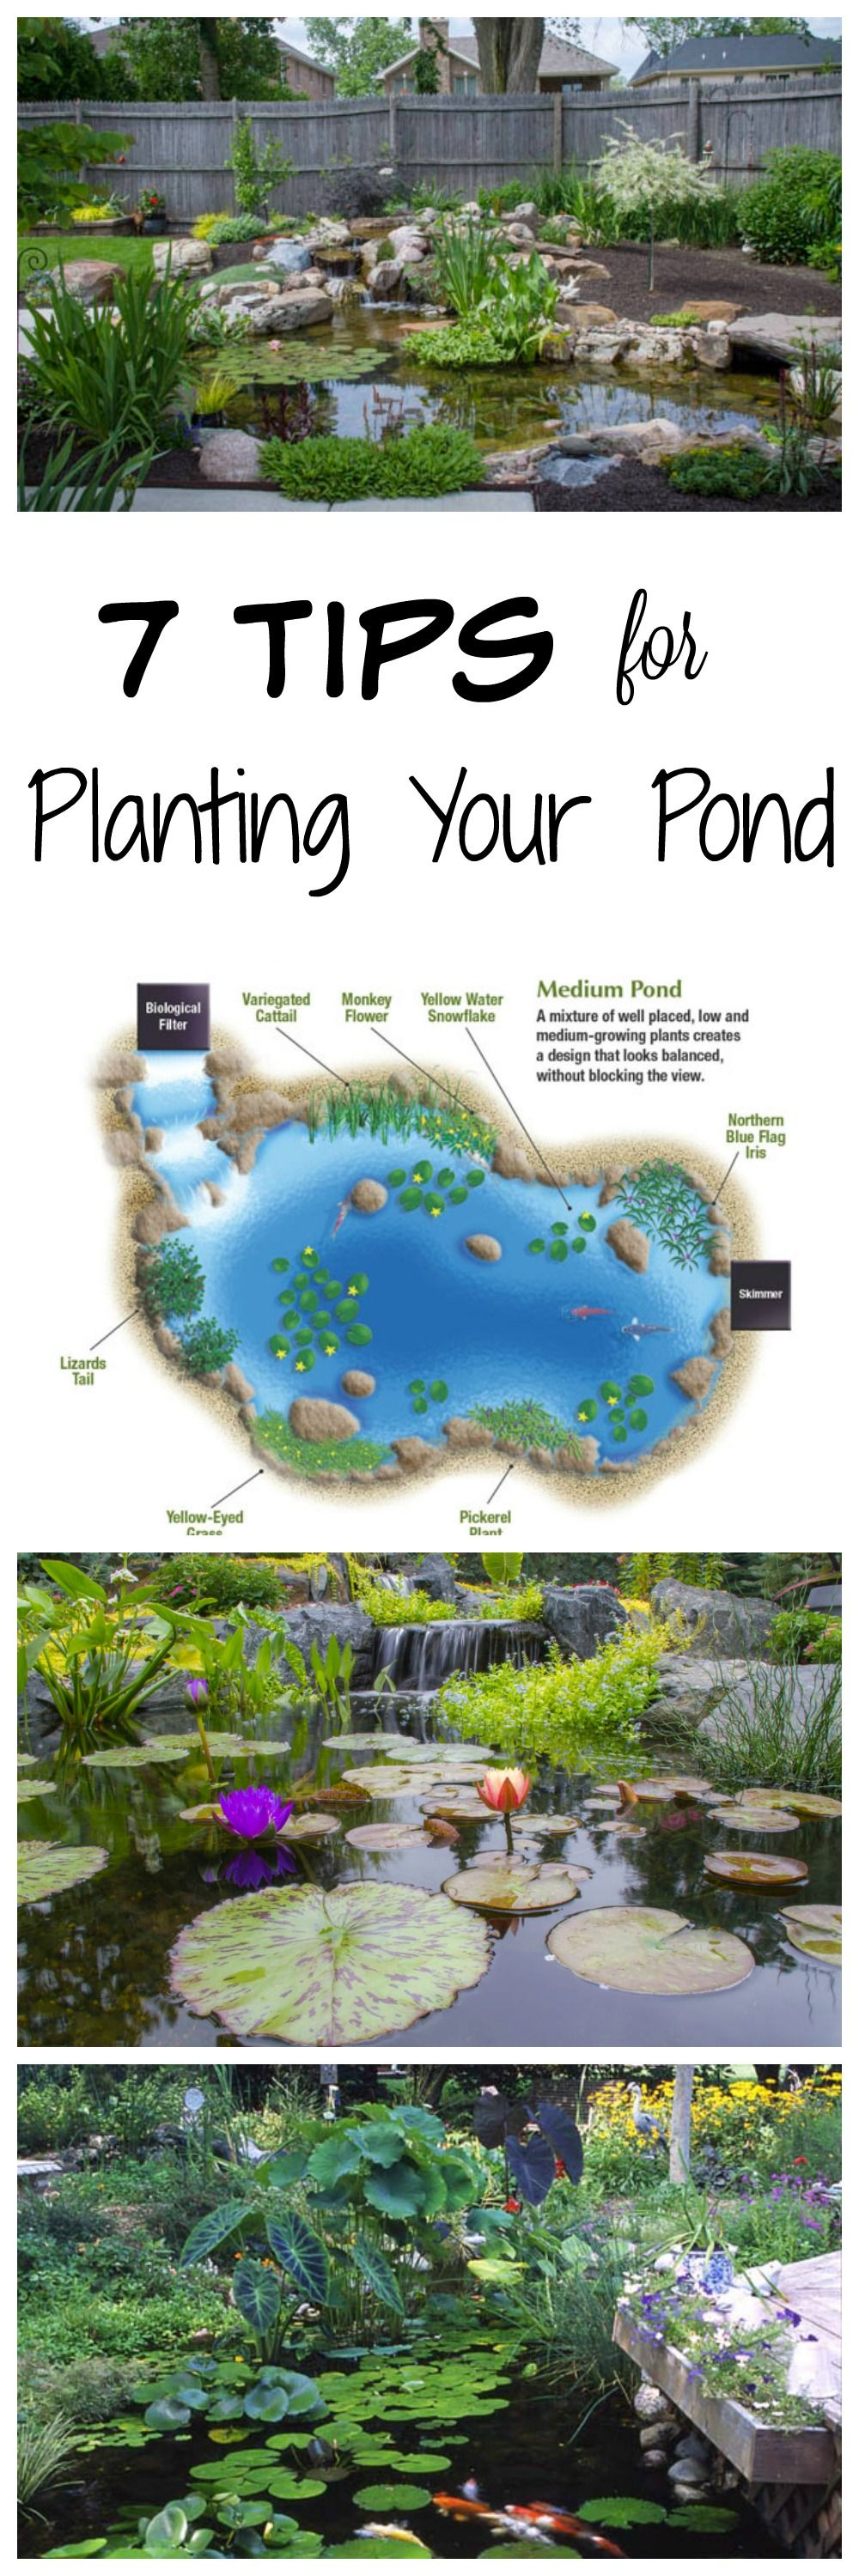 7 tips for planting your pond backyard plants and gardens